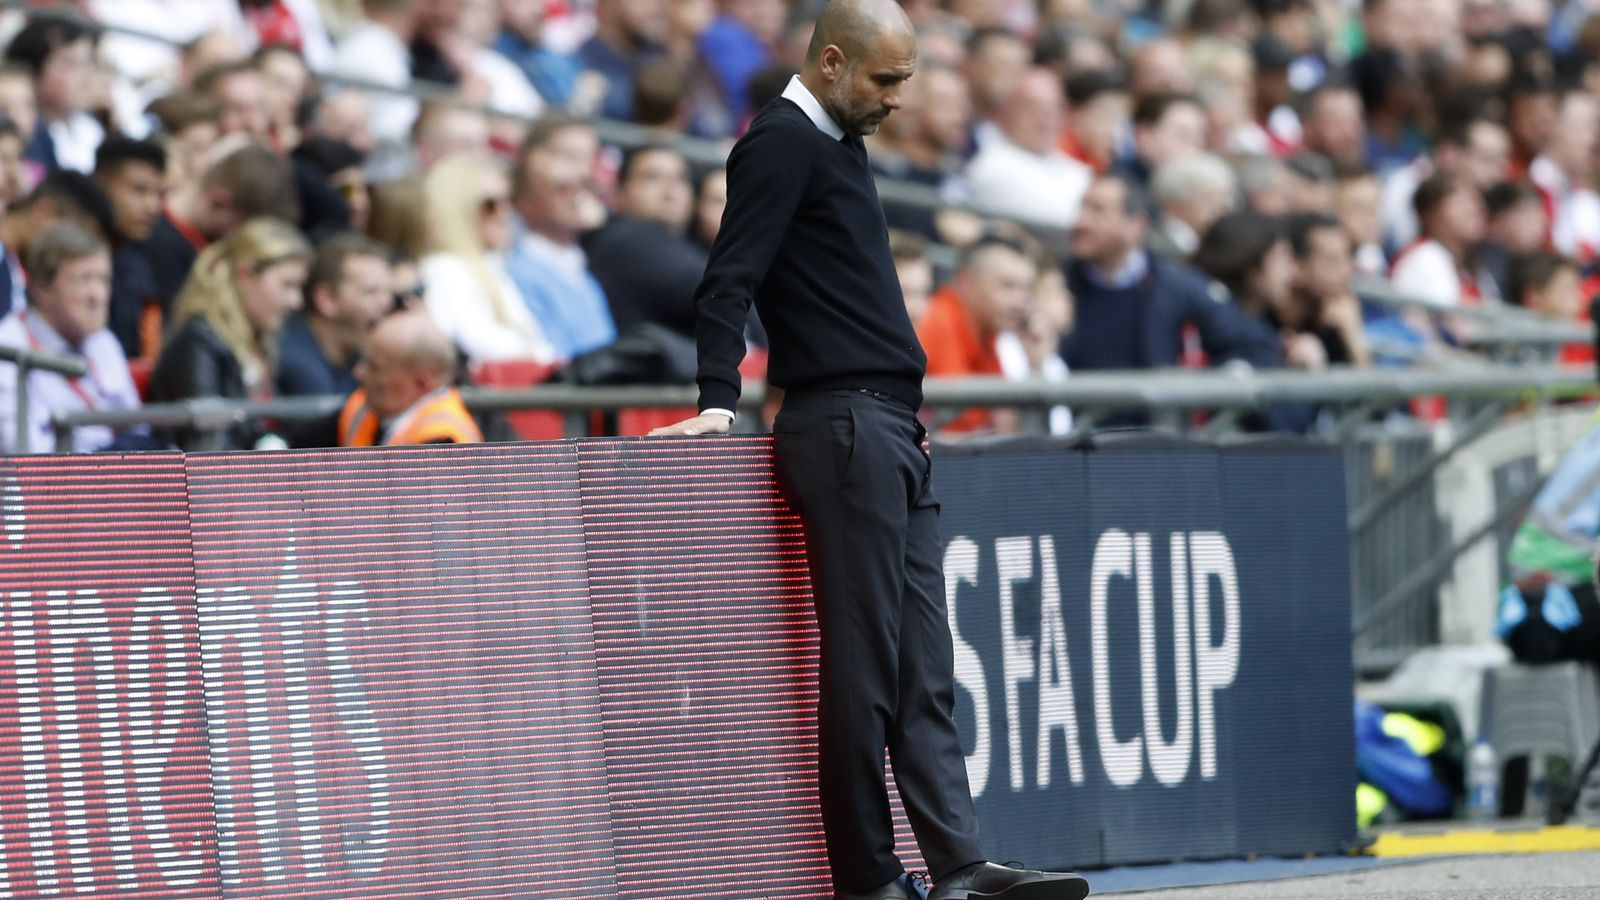 Guardiola, pensatiu, a Wembley